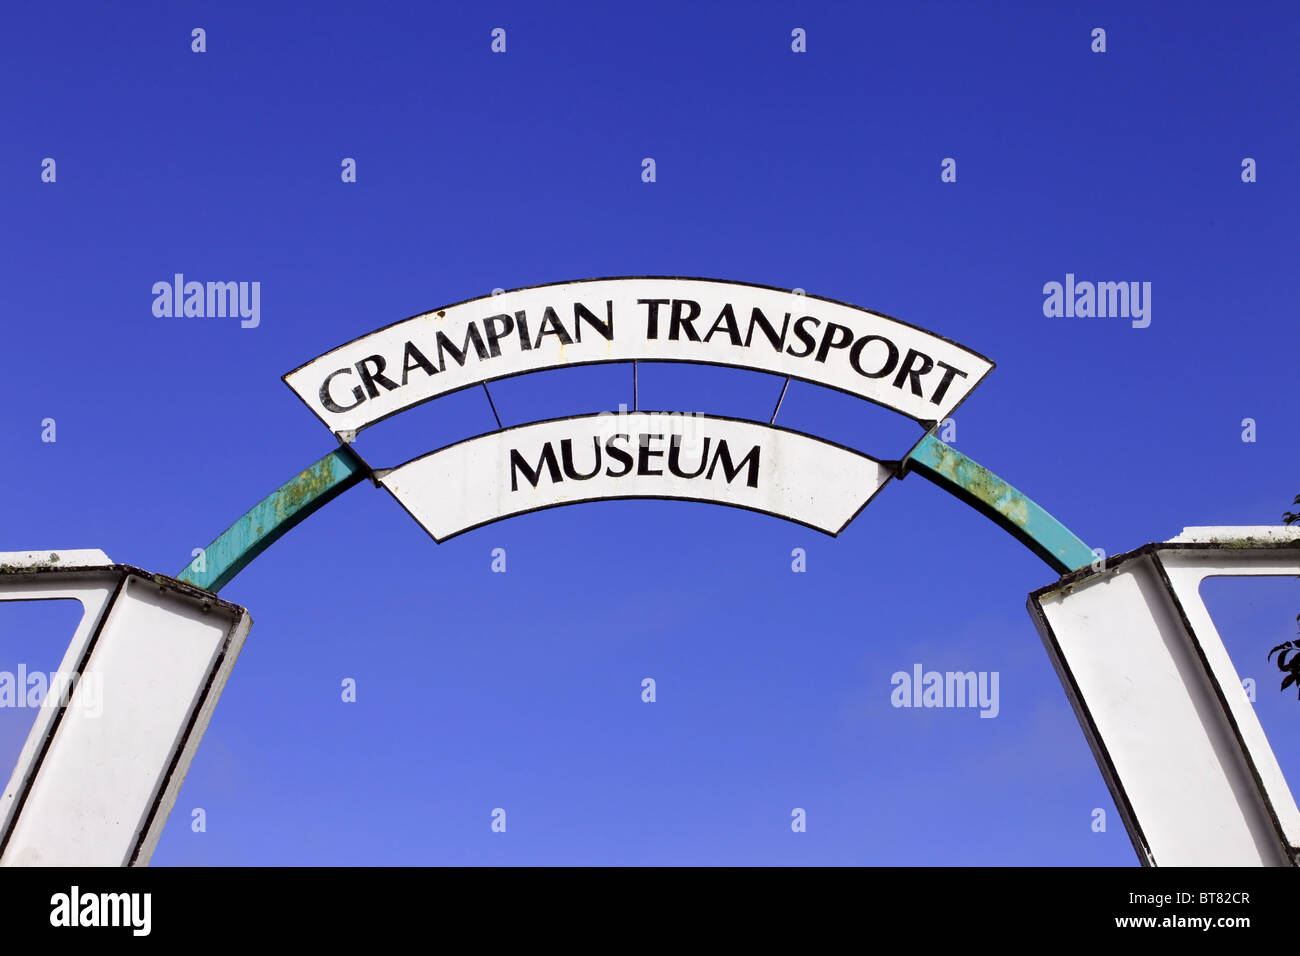 Grampian Transport Museum in the town of Alford in Aberdeenshire, Scotland, UK - Stock Image